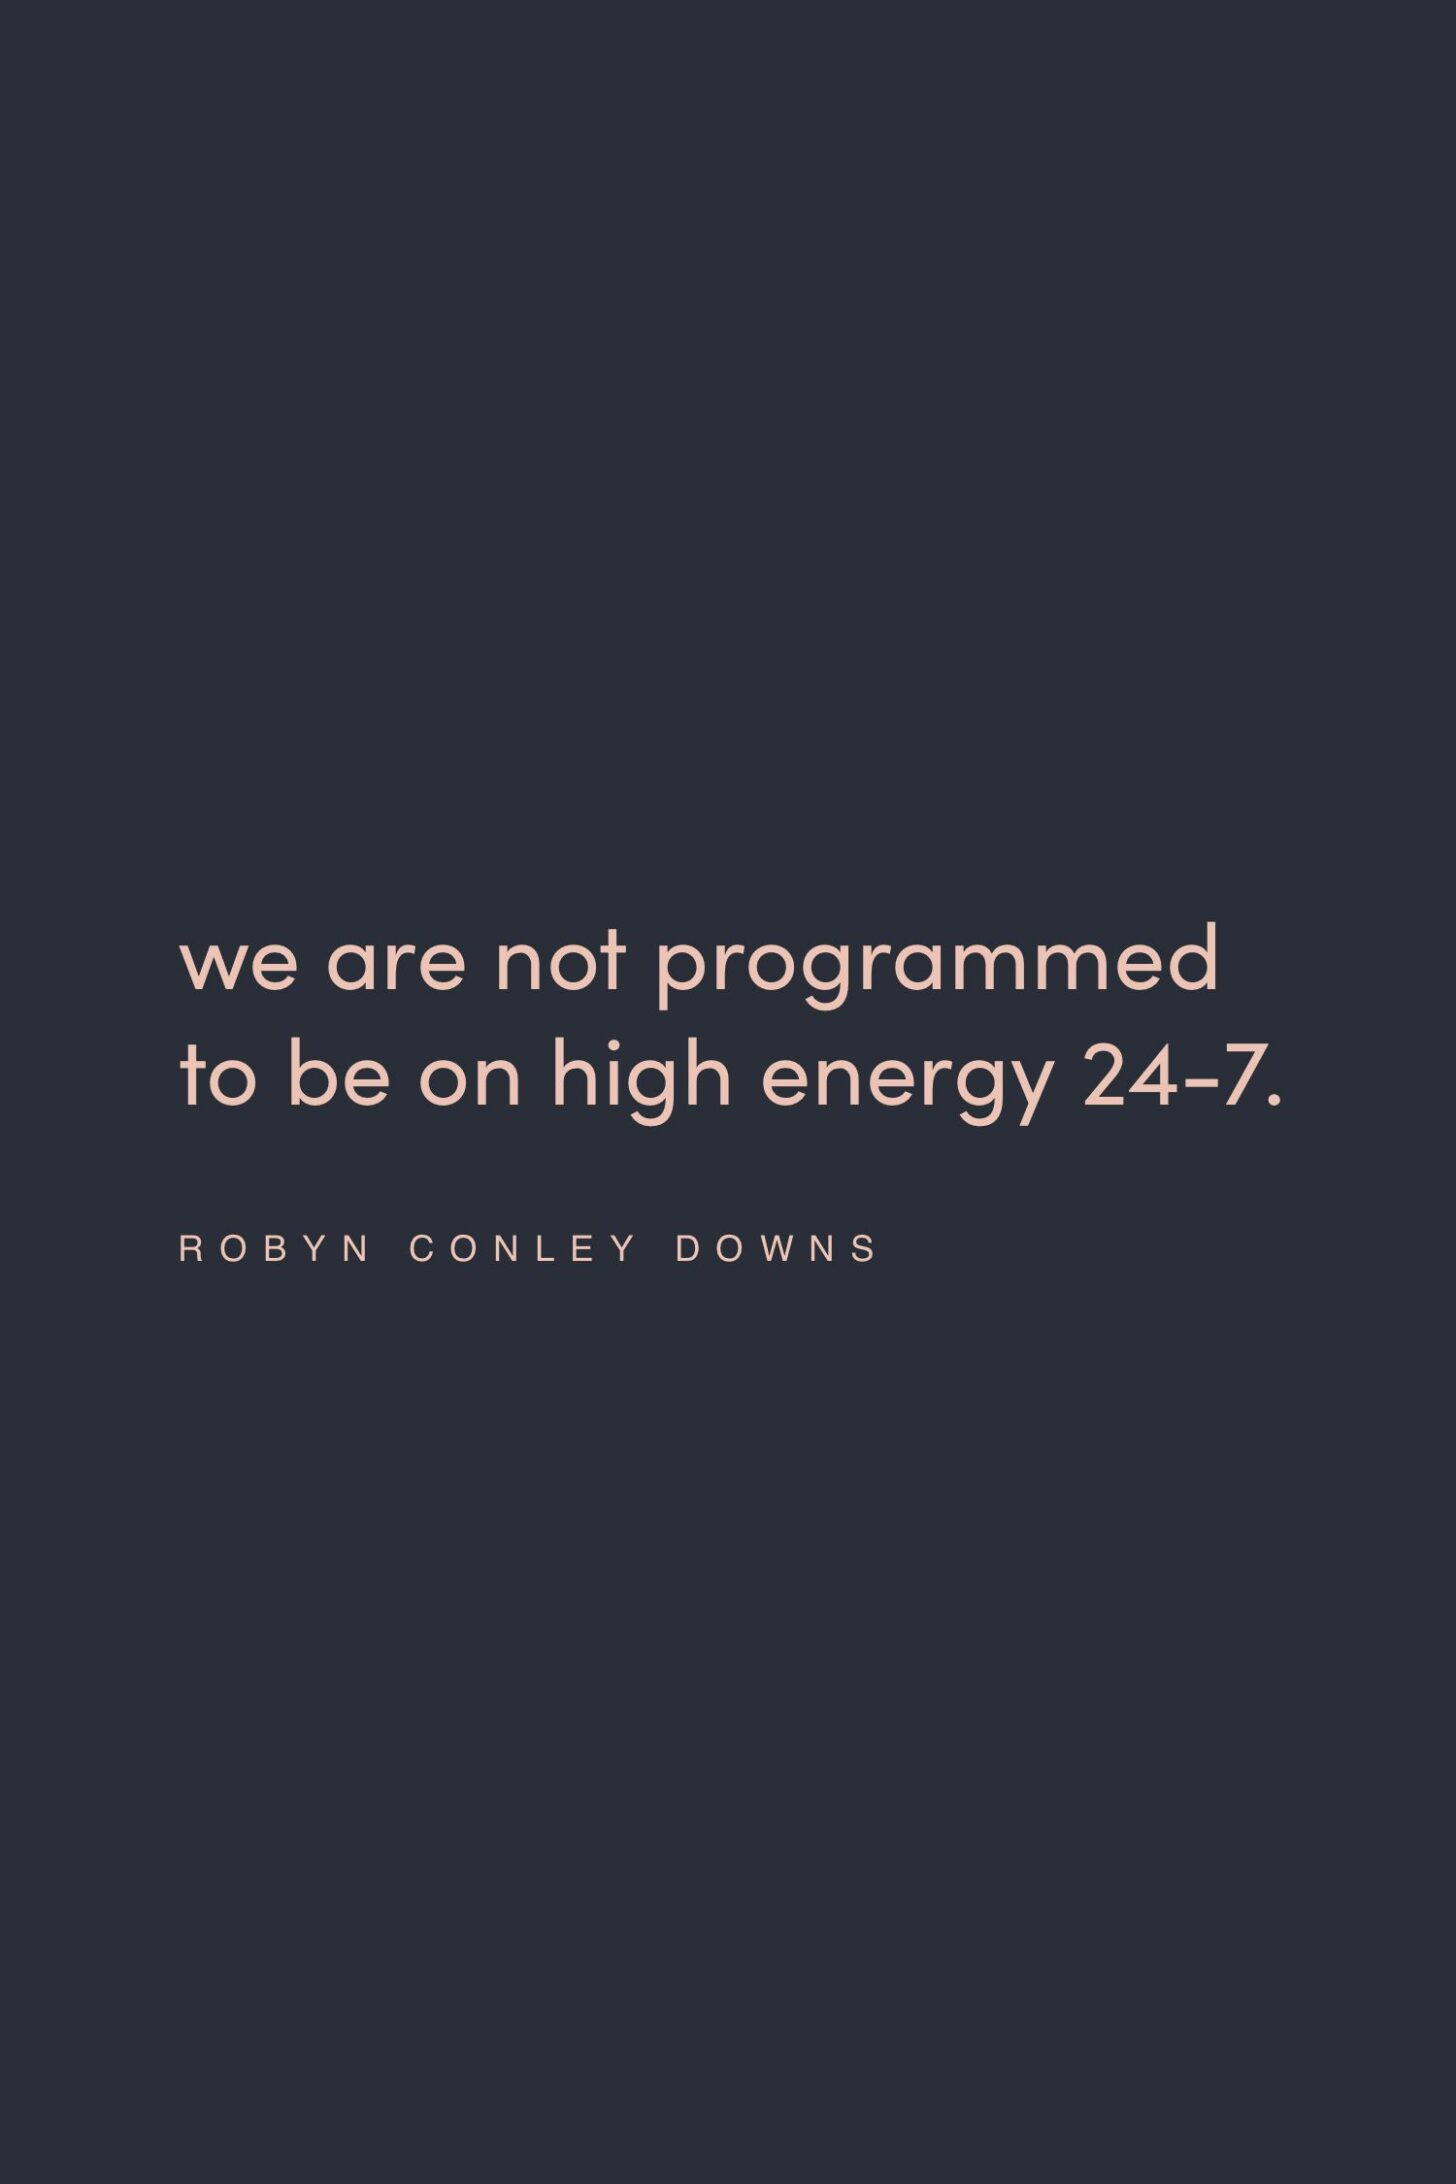 Quote on energy by Robyn Conley Downs on the Feel Good Effect Podcast #realfoodwholelife #feelgoodeffectpodct #positivityquote #inspirationalquote #motivatioanlquote #productivityquote